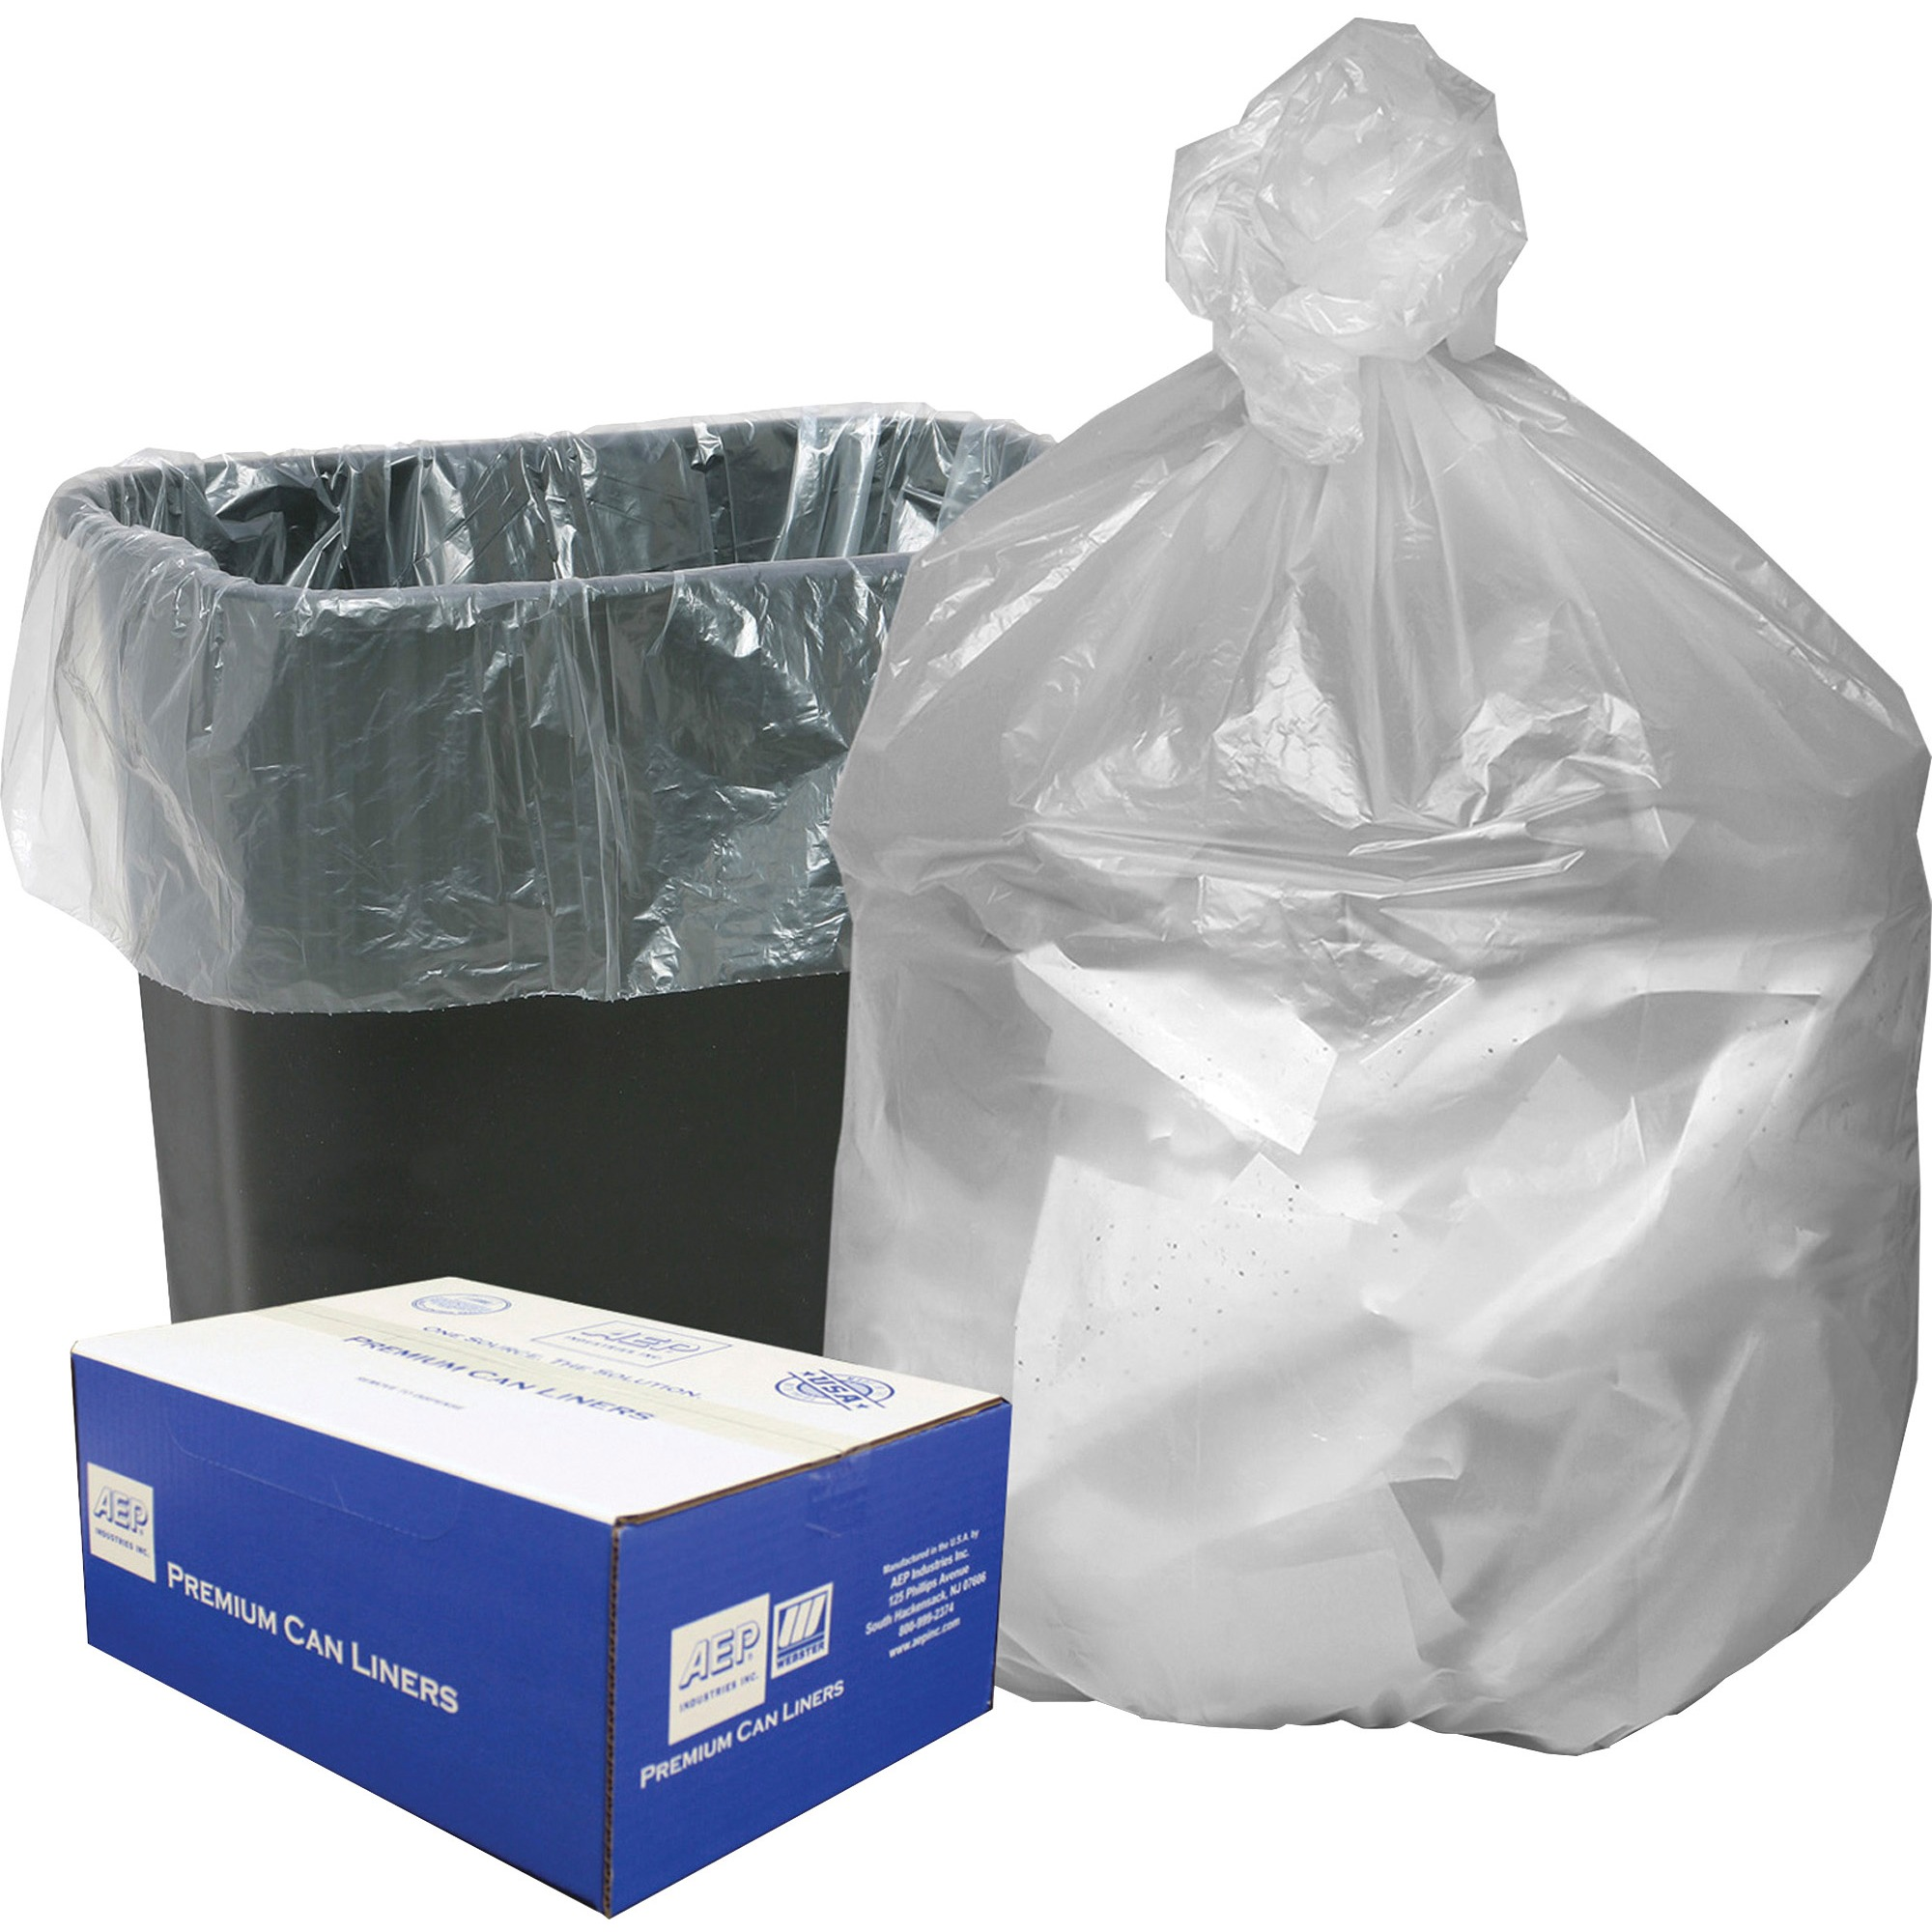 Webster, WBIHD24248N, High Density Commercial Can Liners, 1000 / Carton, Natural, 10 gal